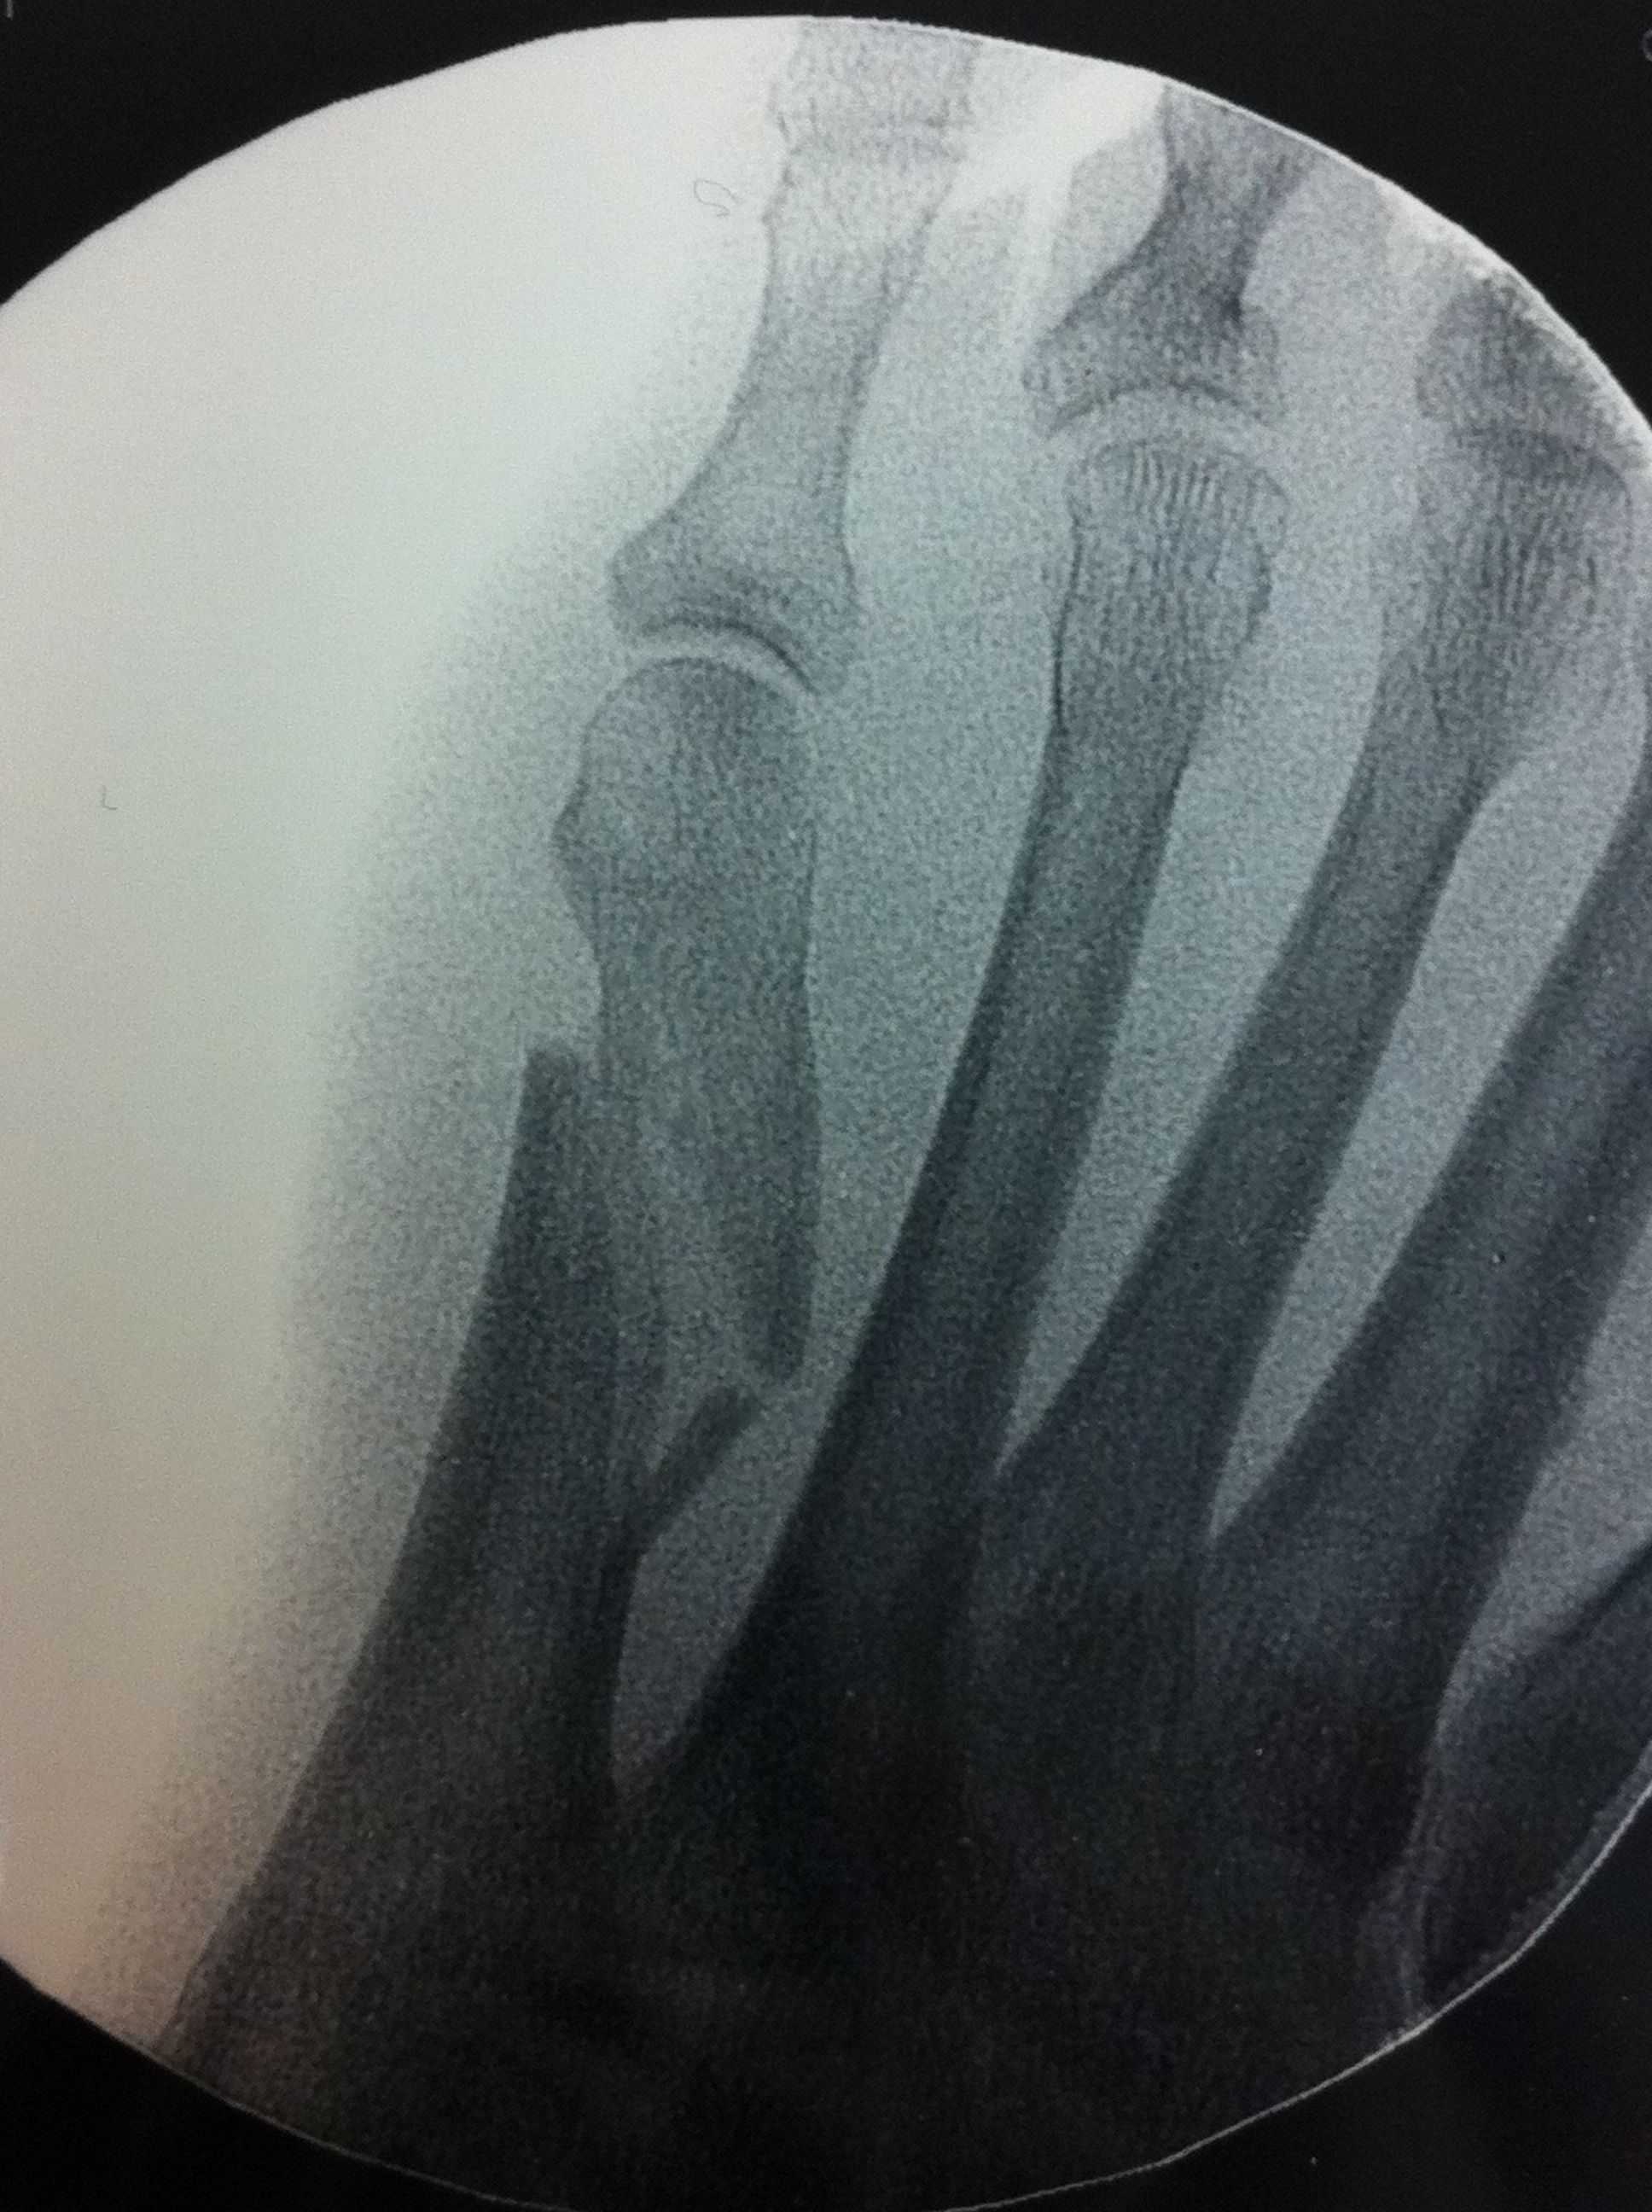 5th met fracture preop